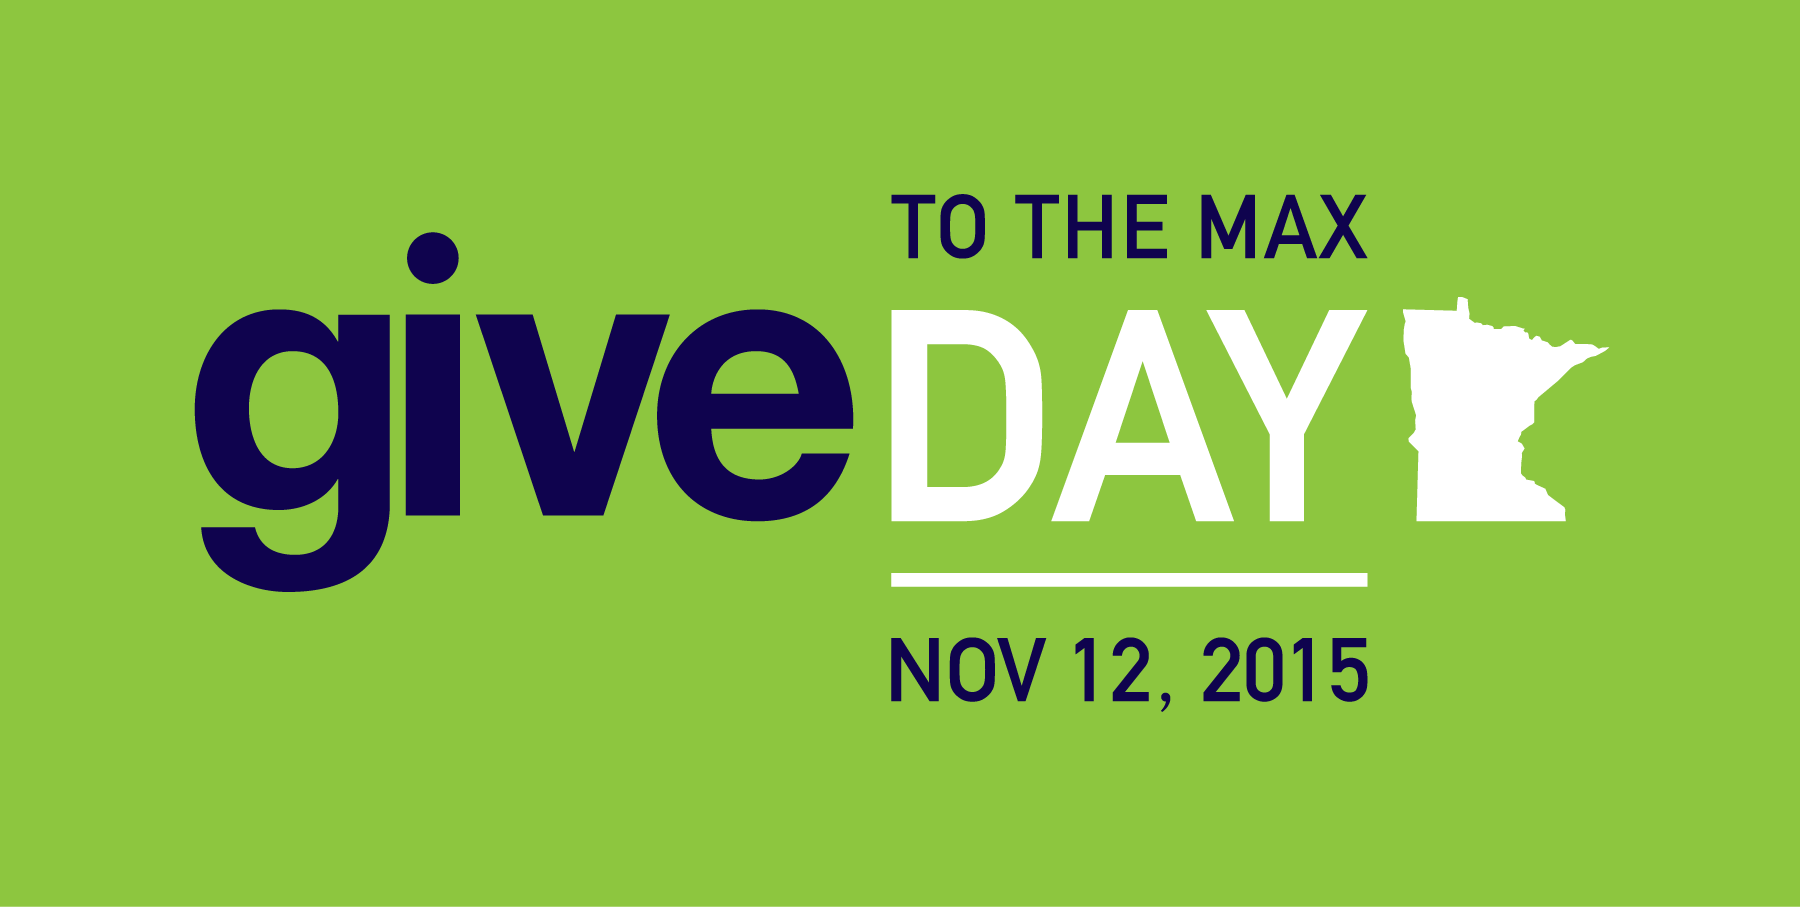 Give to the Max Day 2015: Give to the Max Day 2015